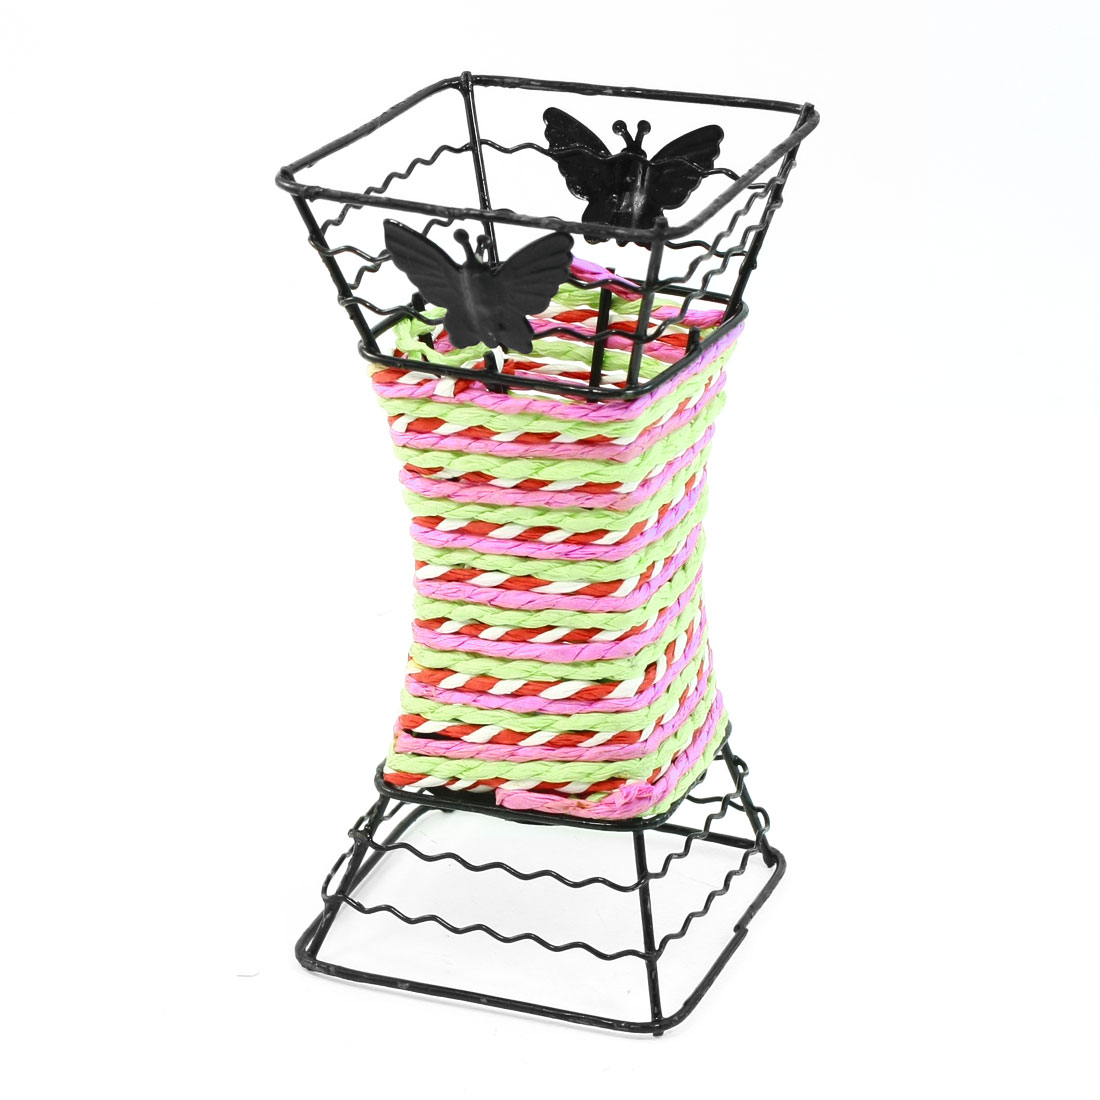 Braided Cord Decor Ruler Eraser Pen Holder Container Organizer Black